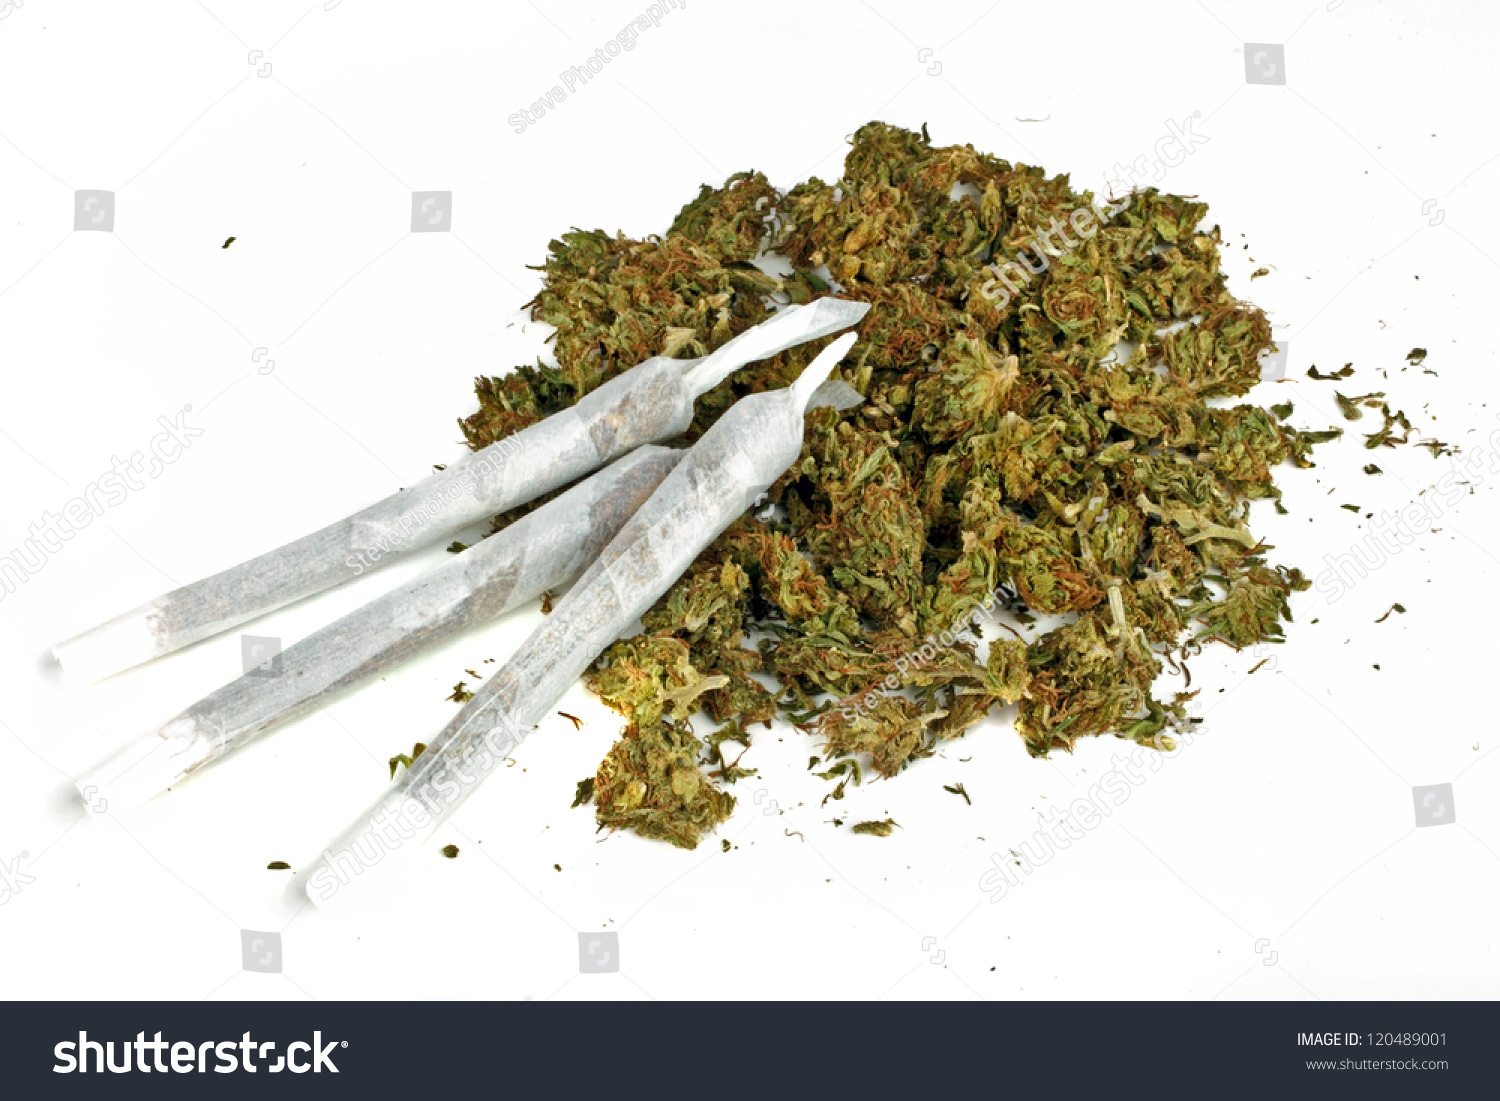 weed wallpaper free download